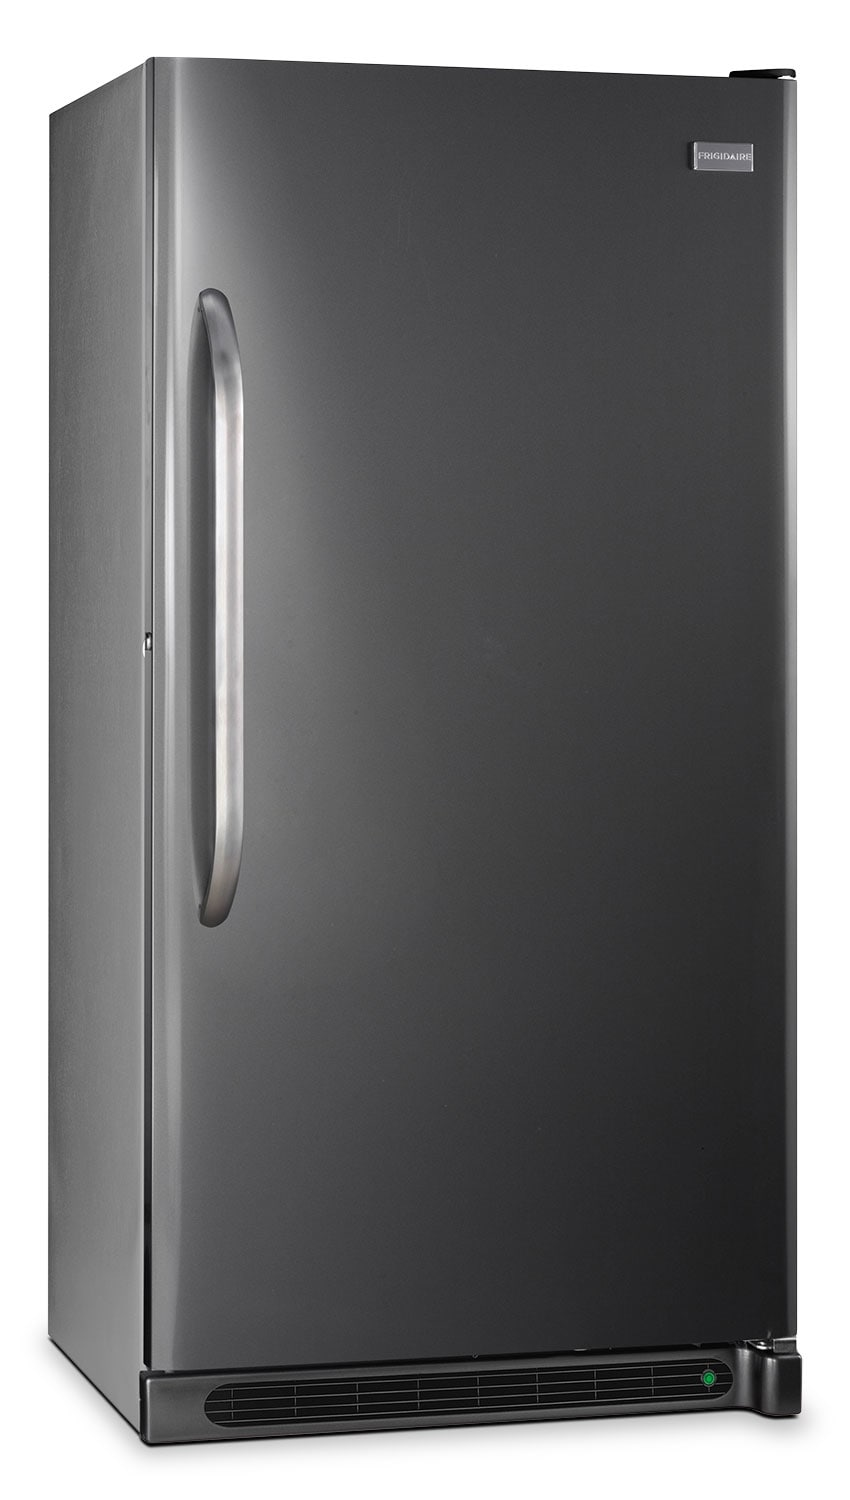 Refrigerators and Freezers - Frigidaire Titanium Upright Freezer (16.7 Cu. Ft.) - FFFH17F4QT